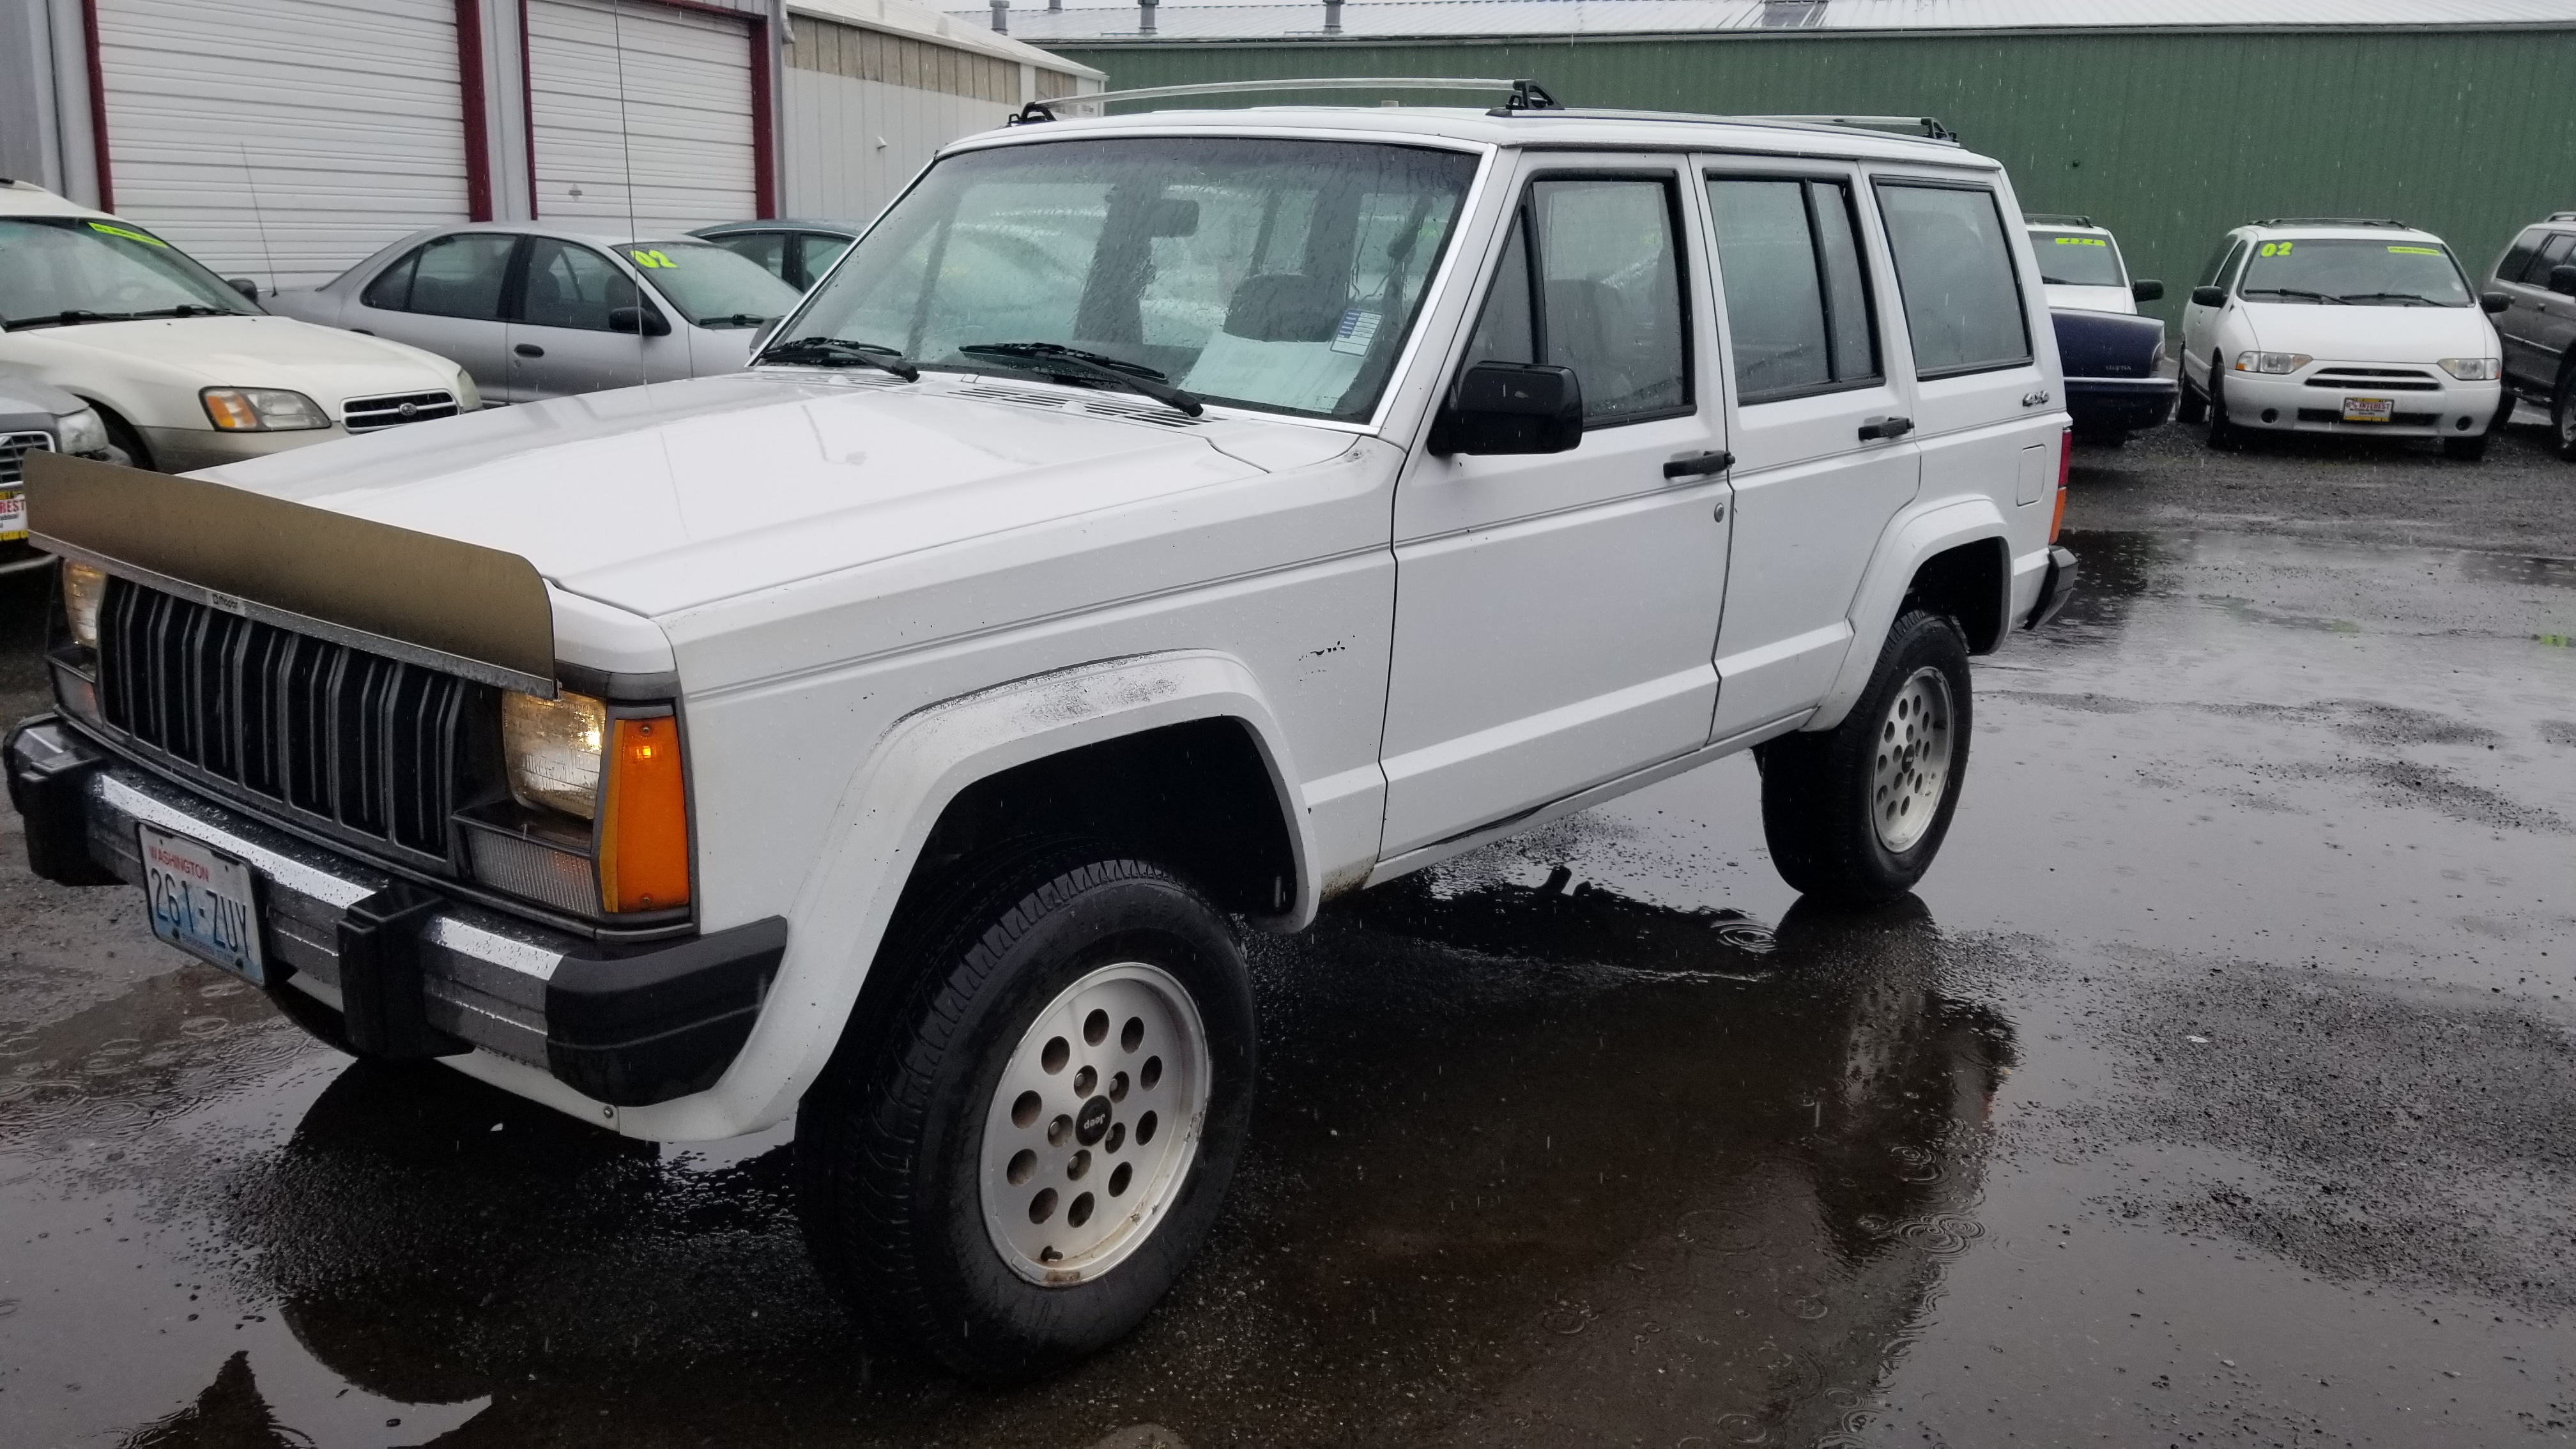 weekend for jeep and sale taming something alcoholism showthread comanche the regret update rust